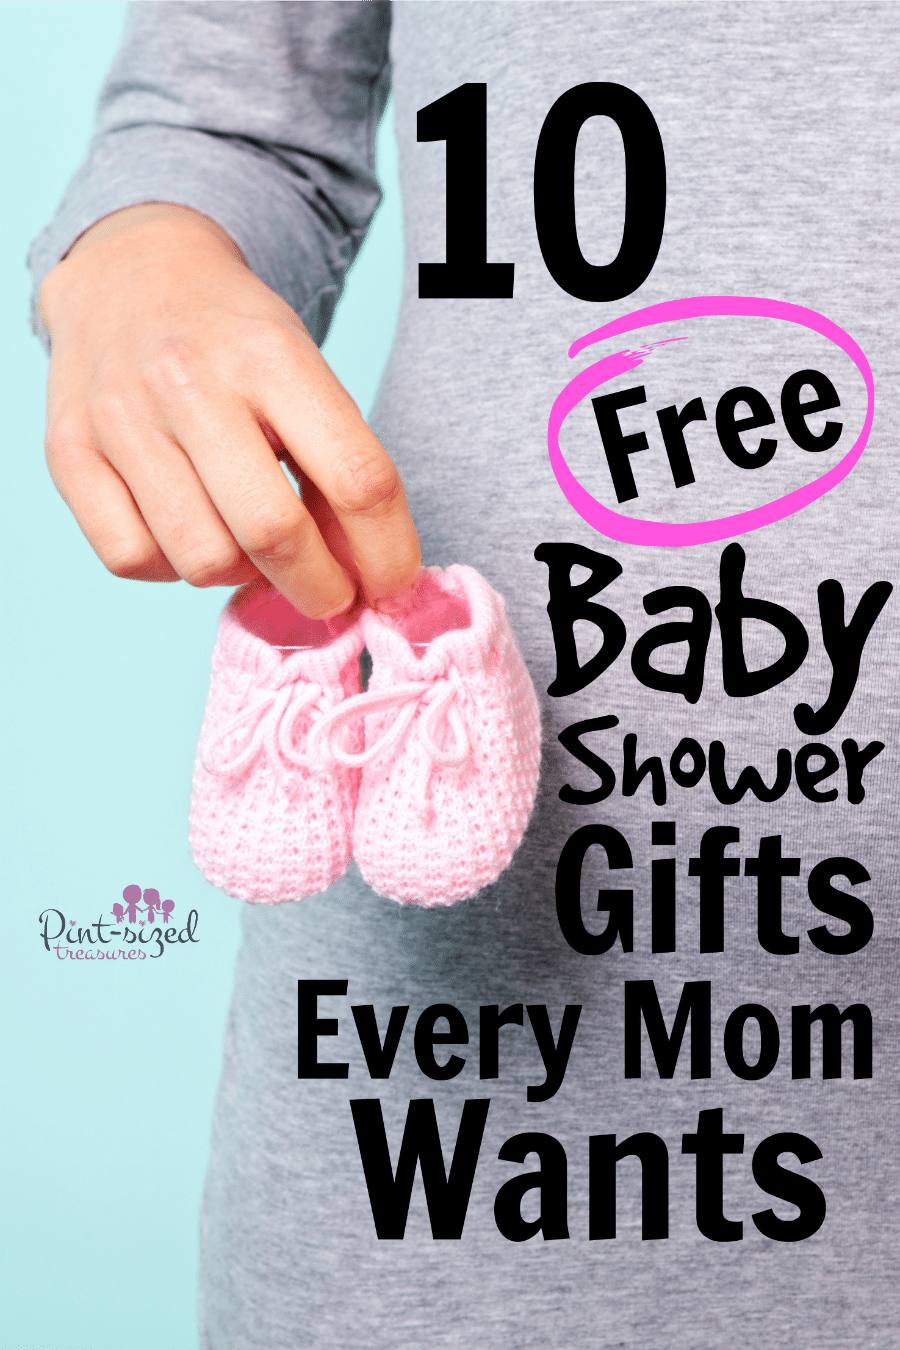 free baby shower gifts every mom wants